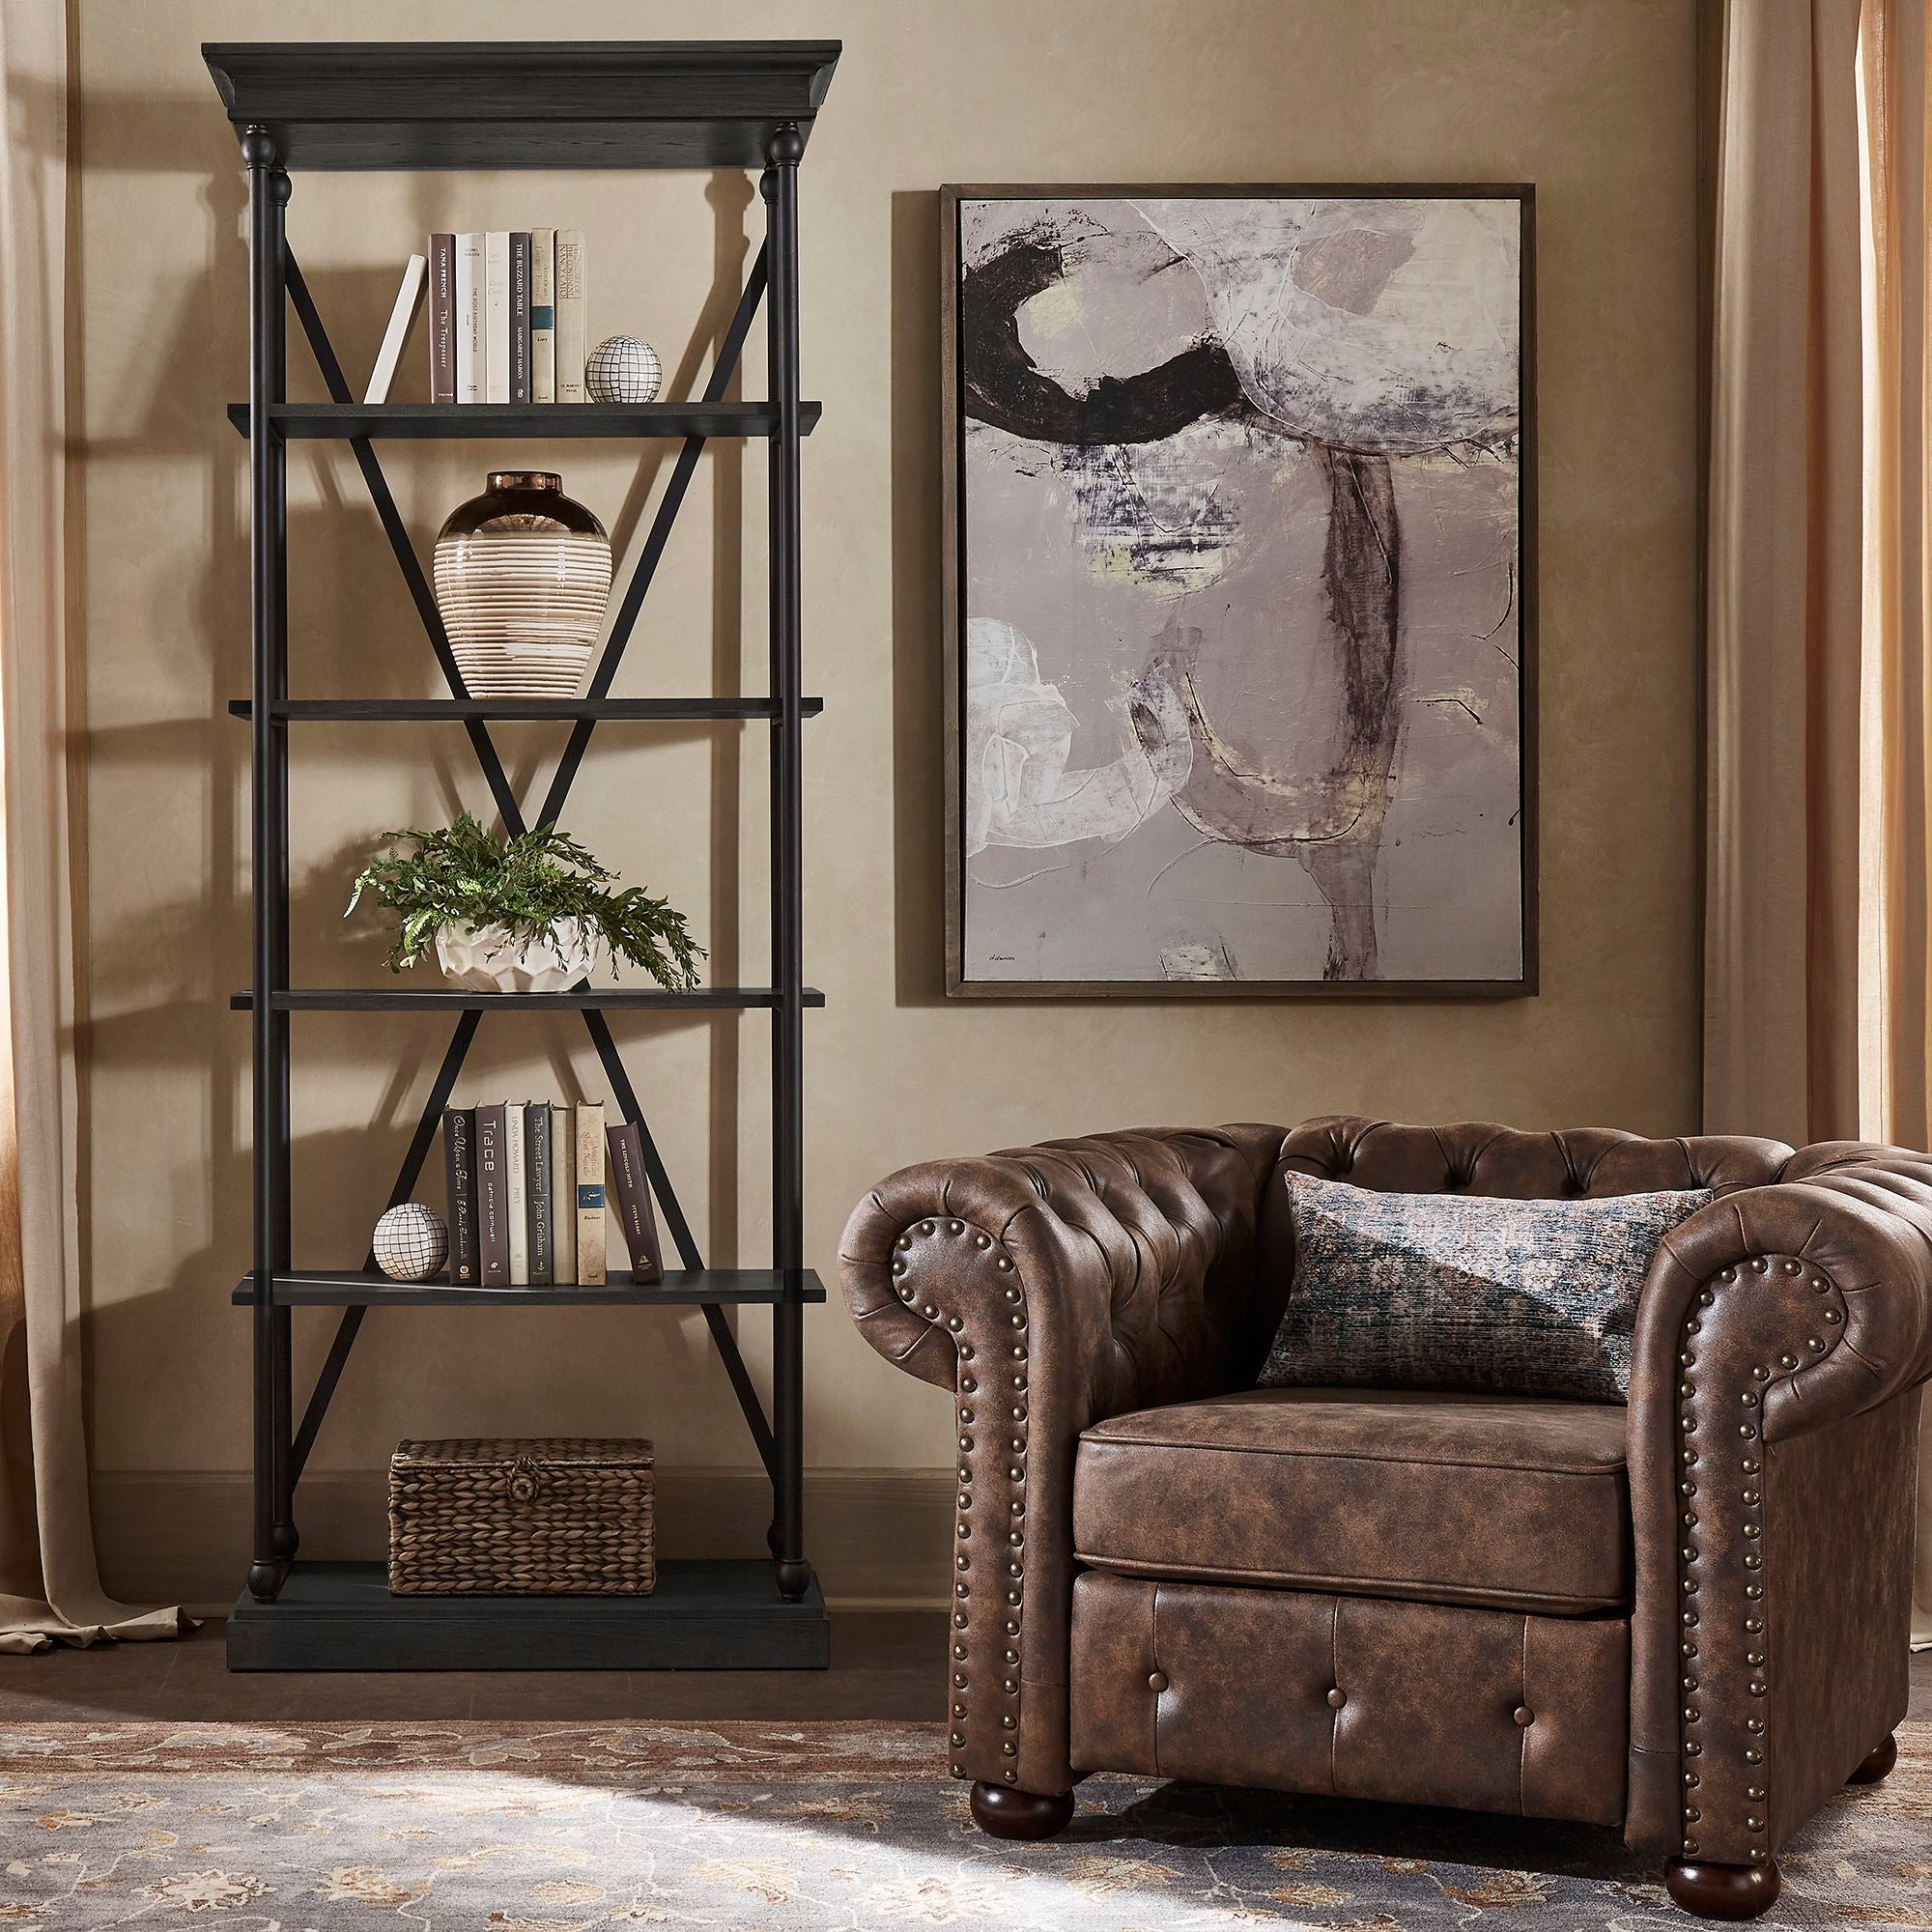 Cornice Wood and Iron Bookcase - Black Color Finish